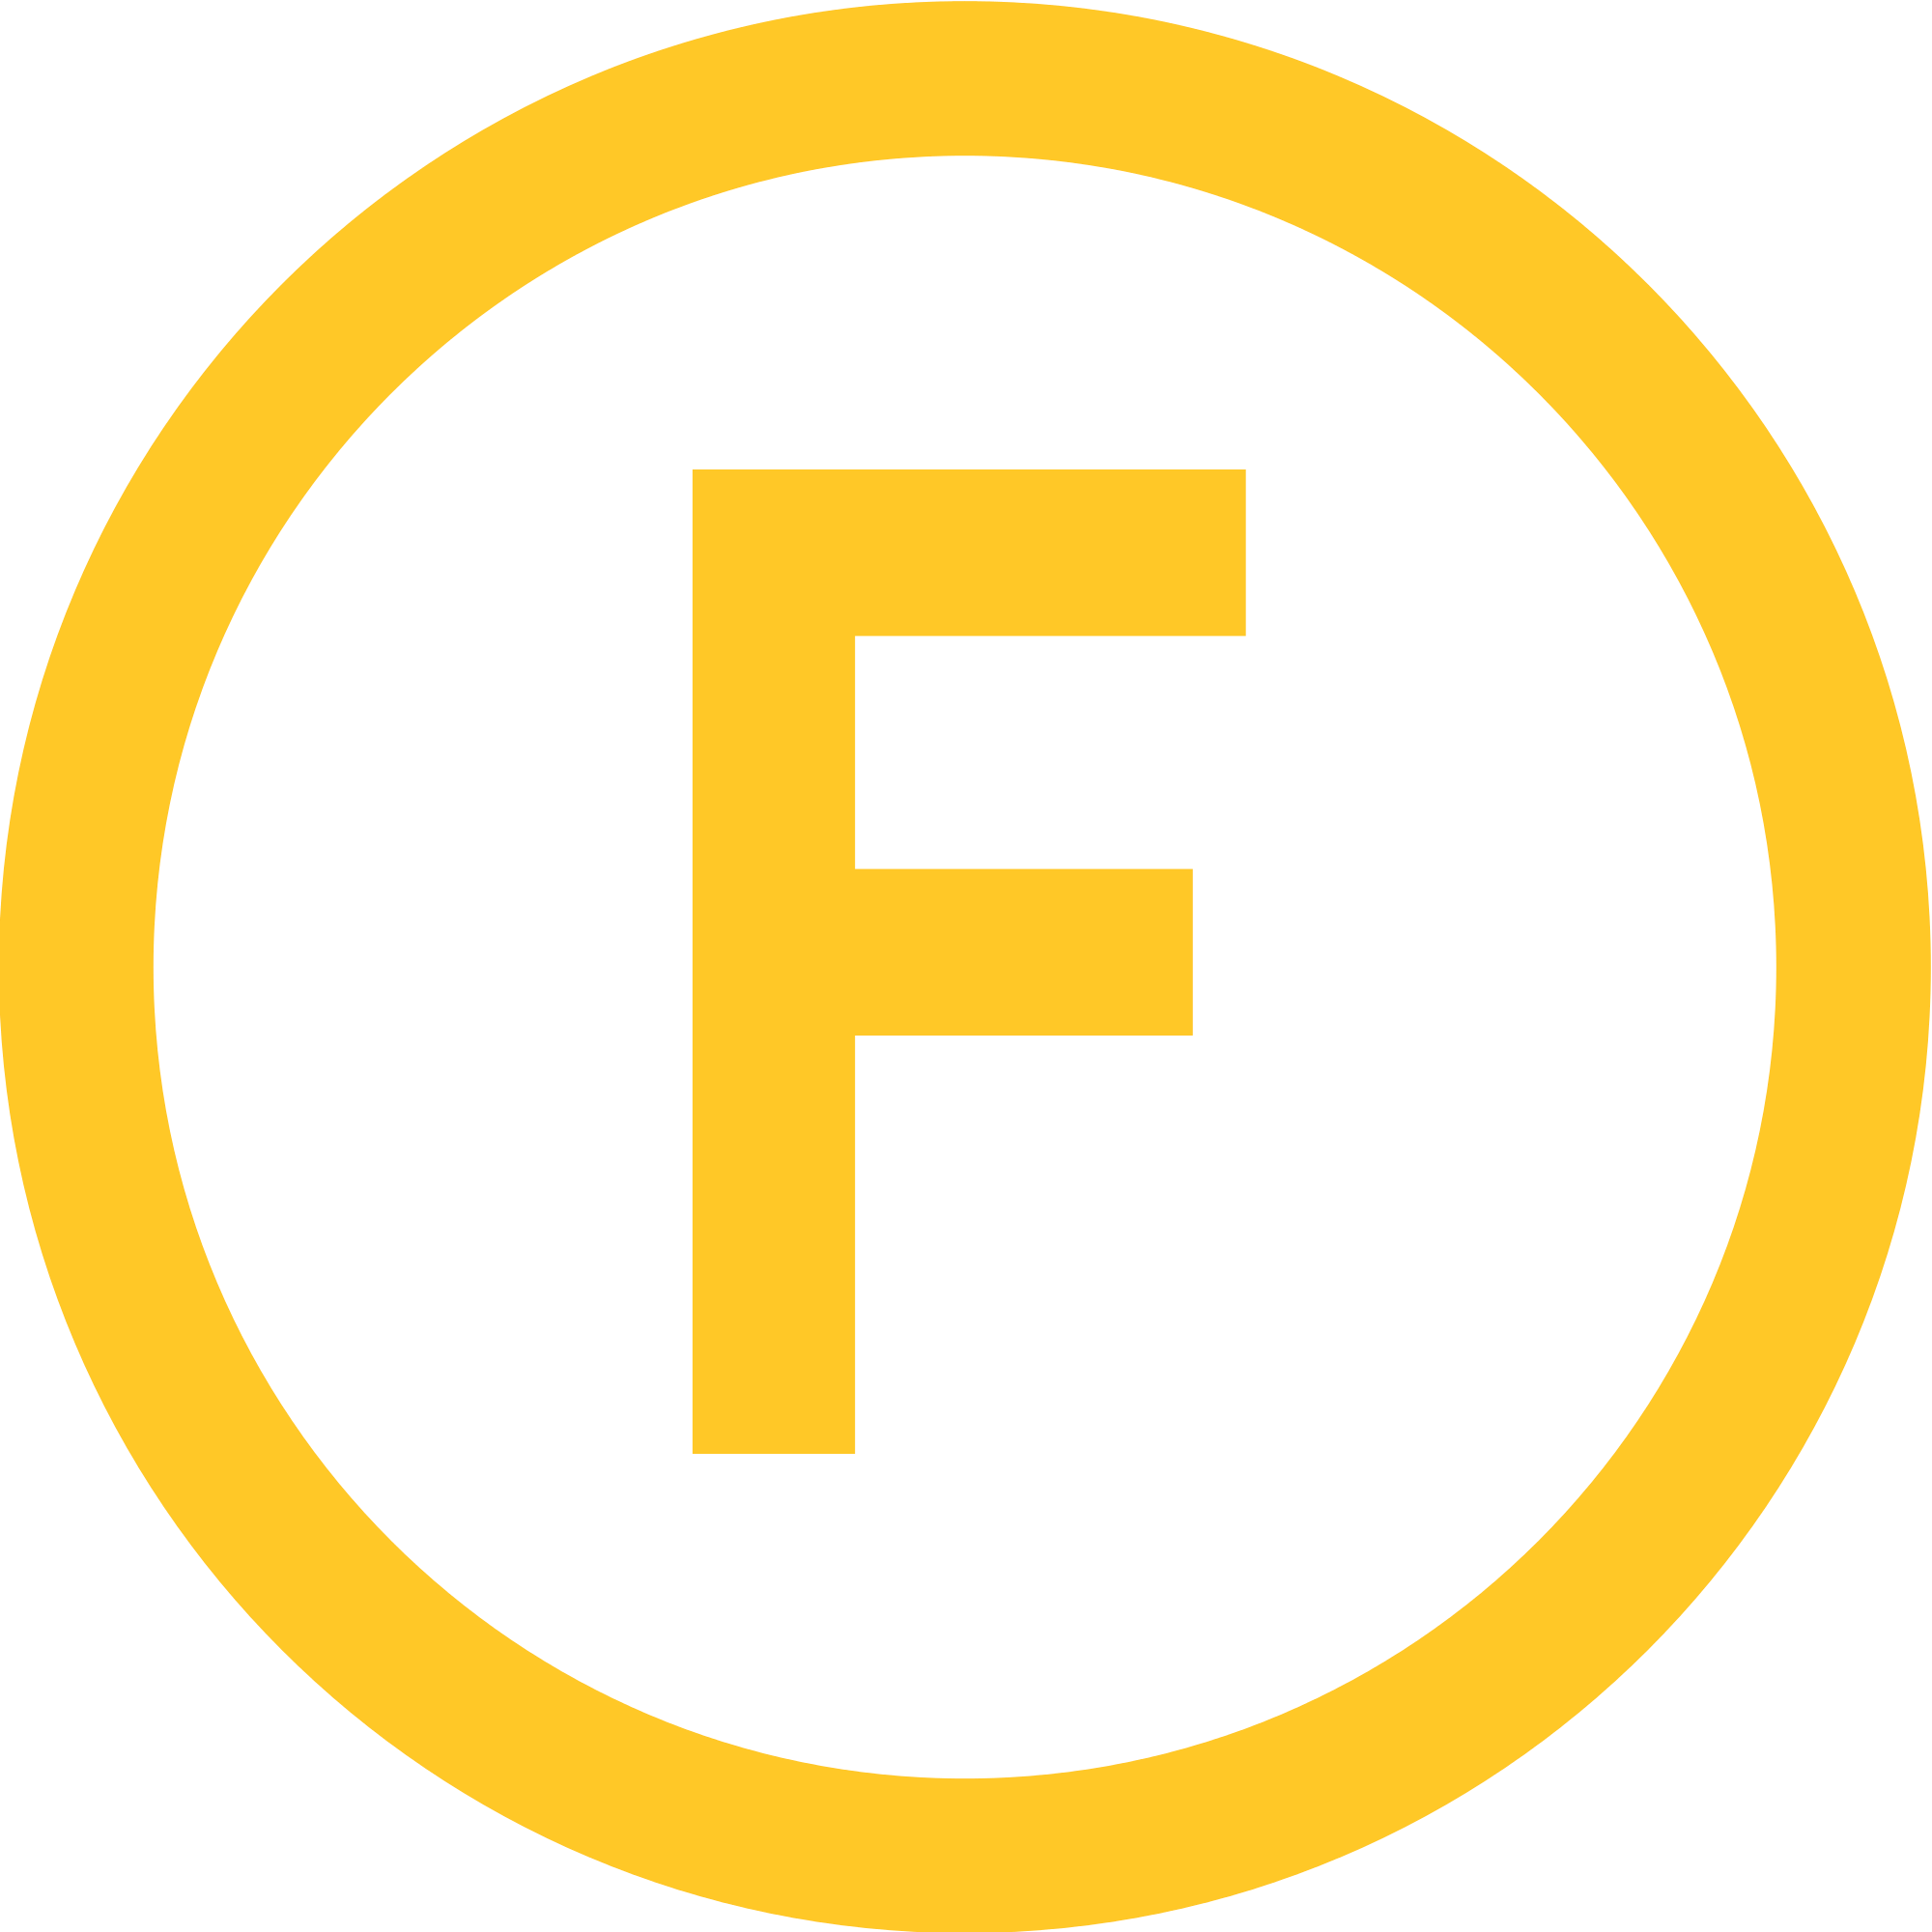 Transparent f yellow. Orange circle logo ligne